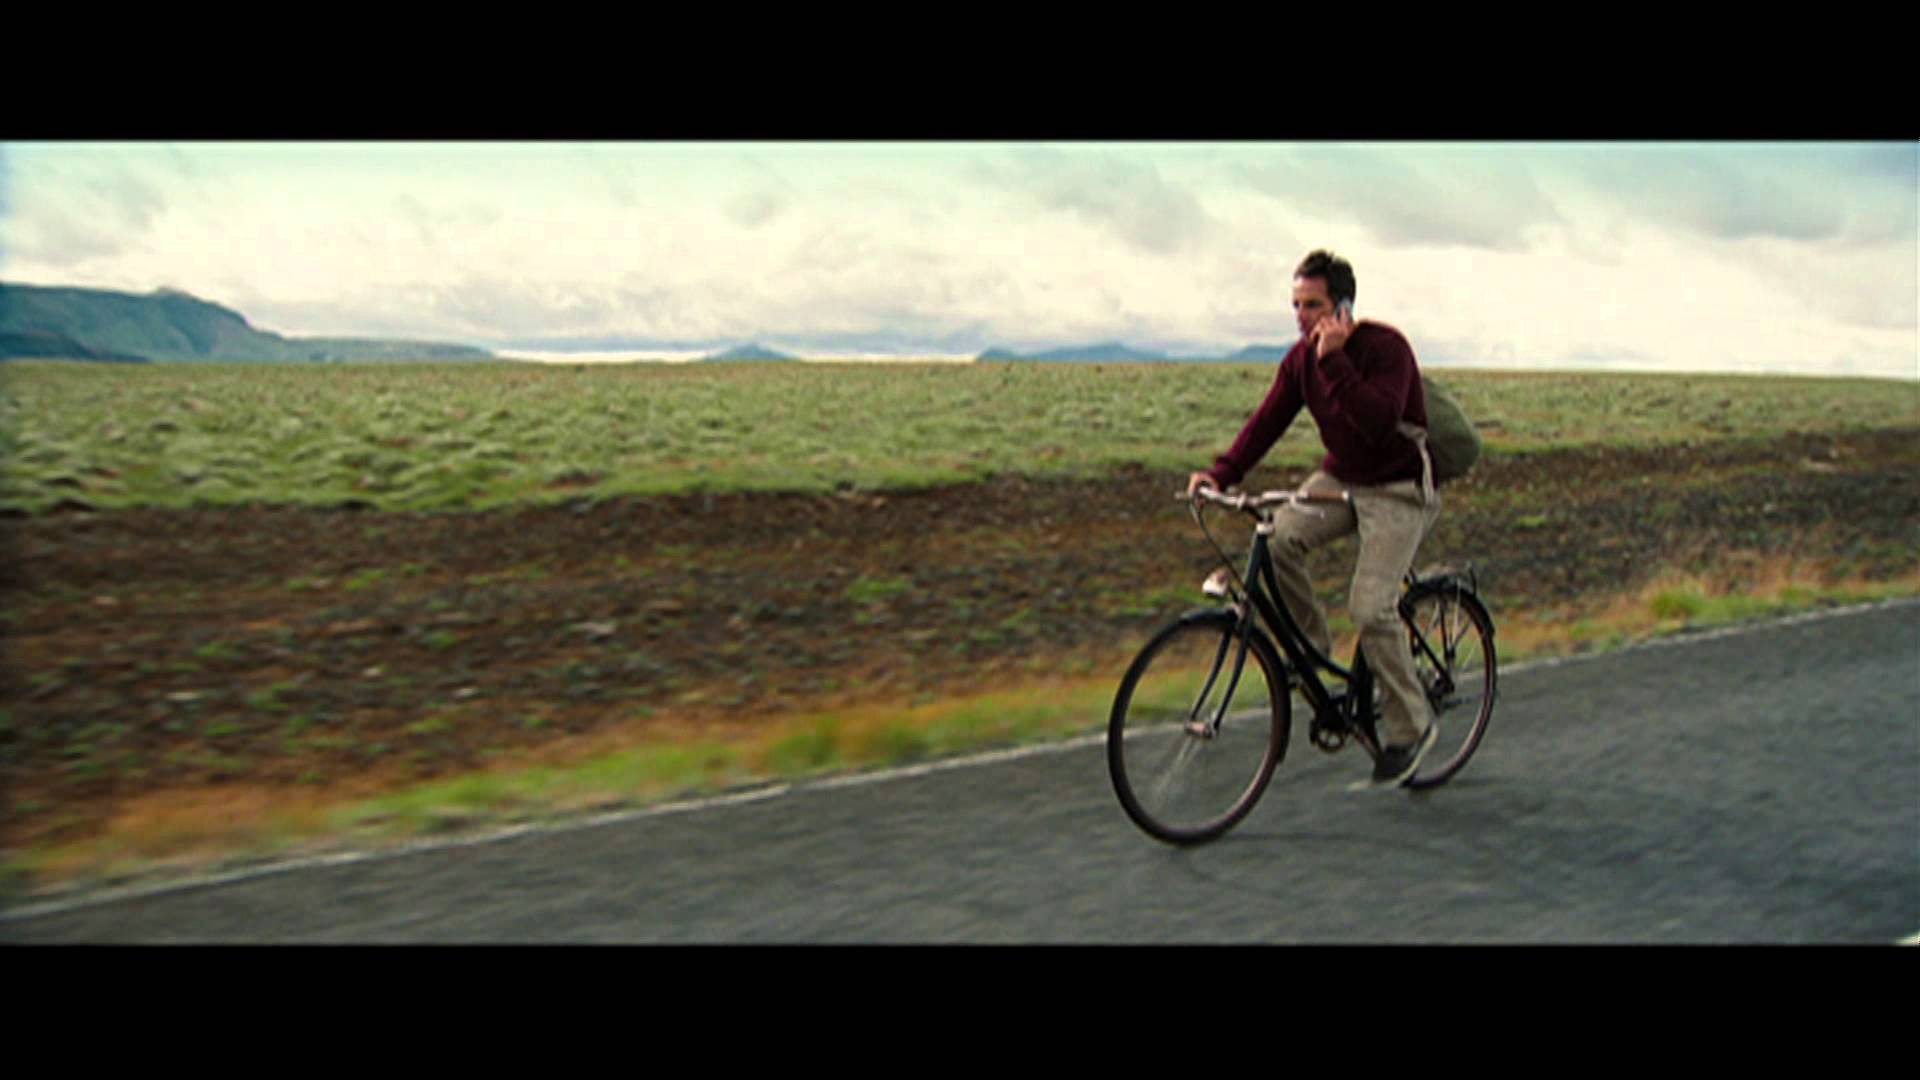 Secret Life Of Walter Mitty Wallpapers Top Free Secret Life Of